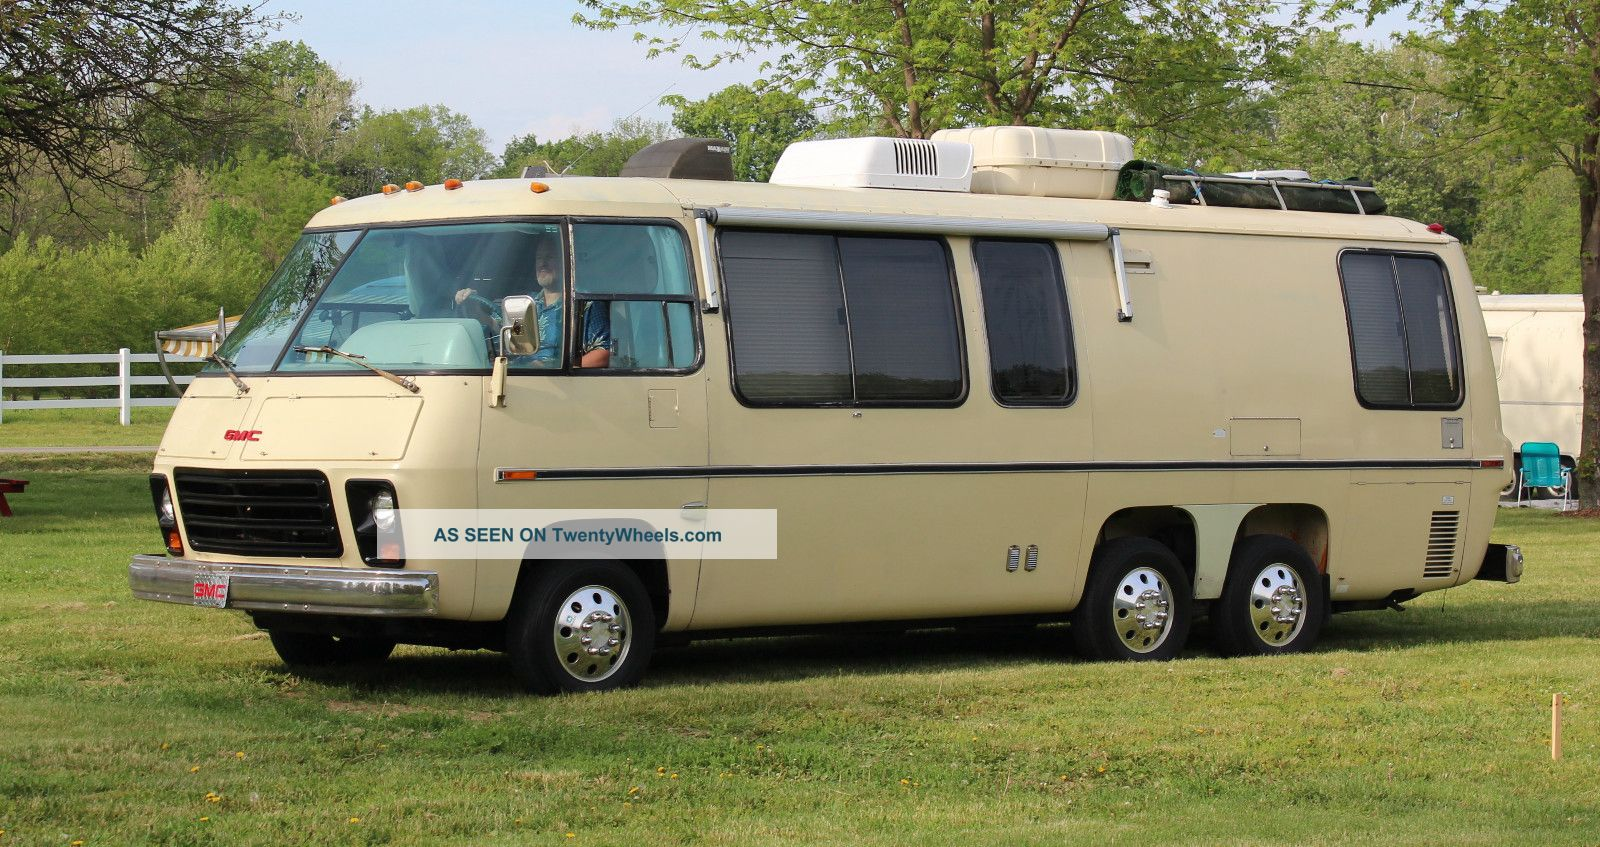 1976 Gmc Eleganza Ii Class A RVs photo